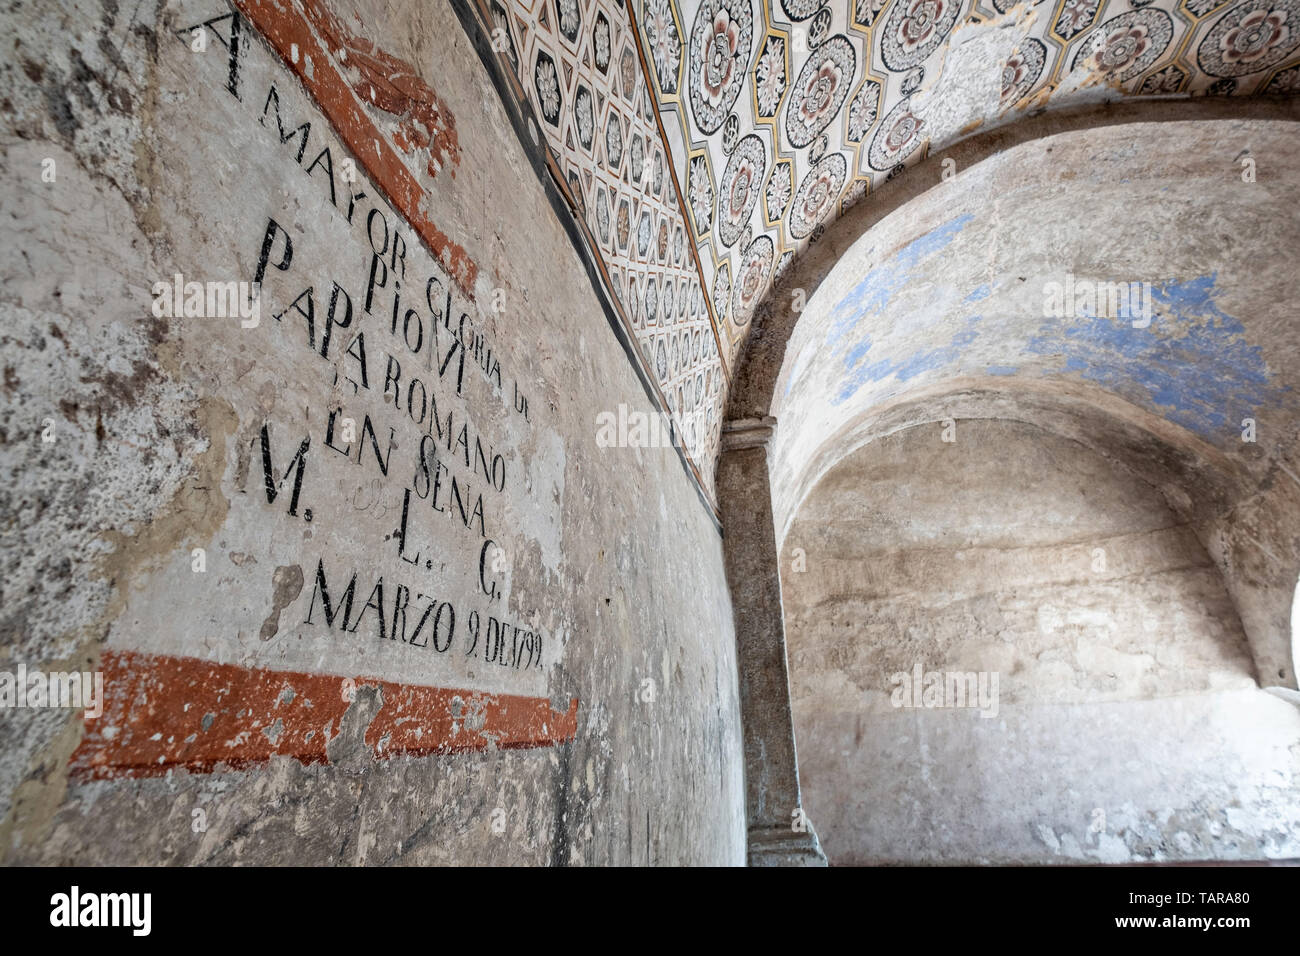 Painted murals on a wall in the San Nicolas Tolentino Temple and Ex-Monastery in Actopan, Hidalgo, Mexico. The colonial church and convent  was built in 1546 and combine architectural elements from the romantic, gothic and renaissance periods. - Stock Image